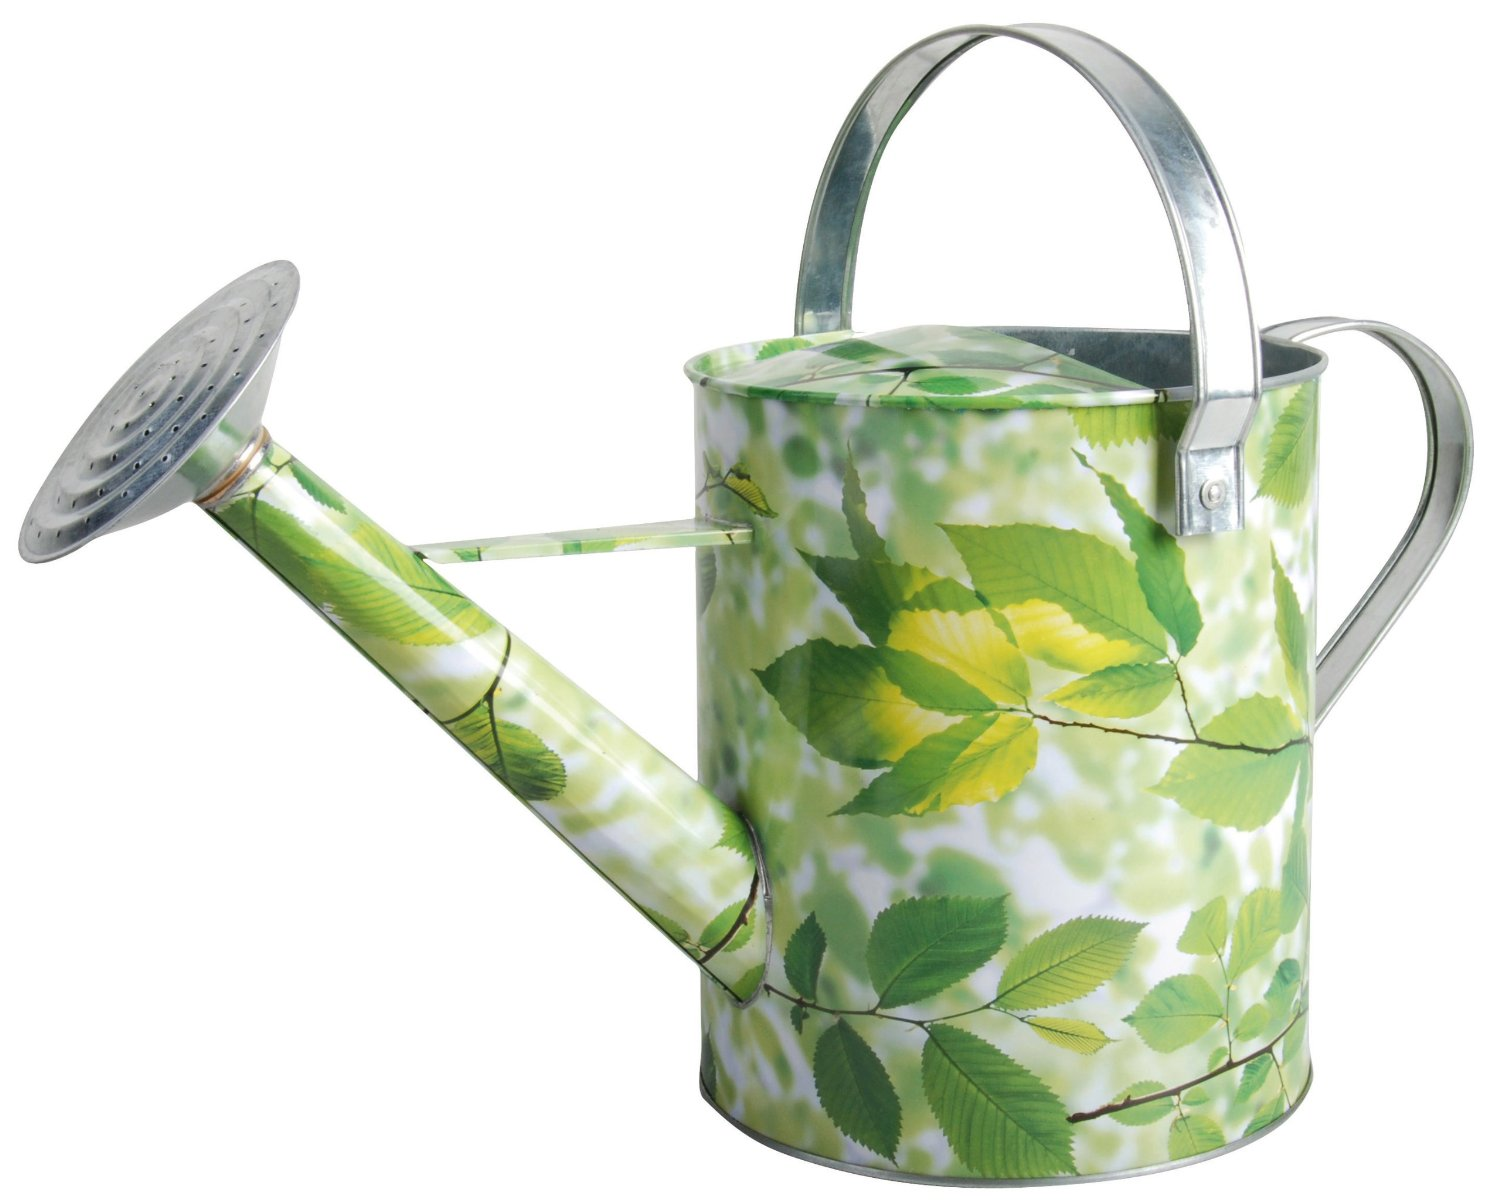 Plant Watering Cans Green Leaf Watering Can Gardening Nirvana